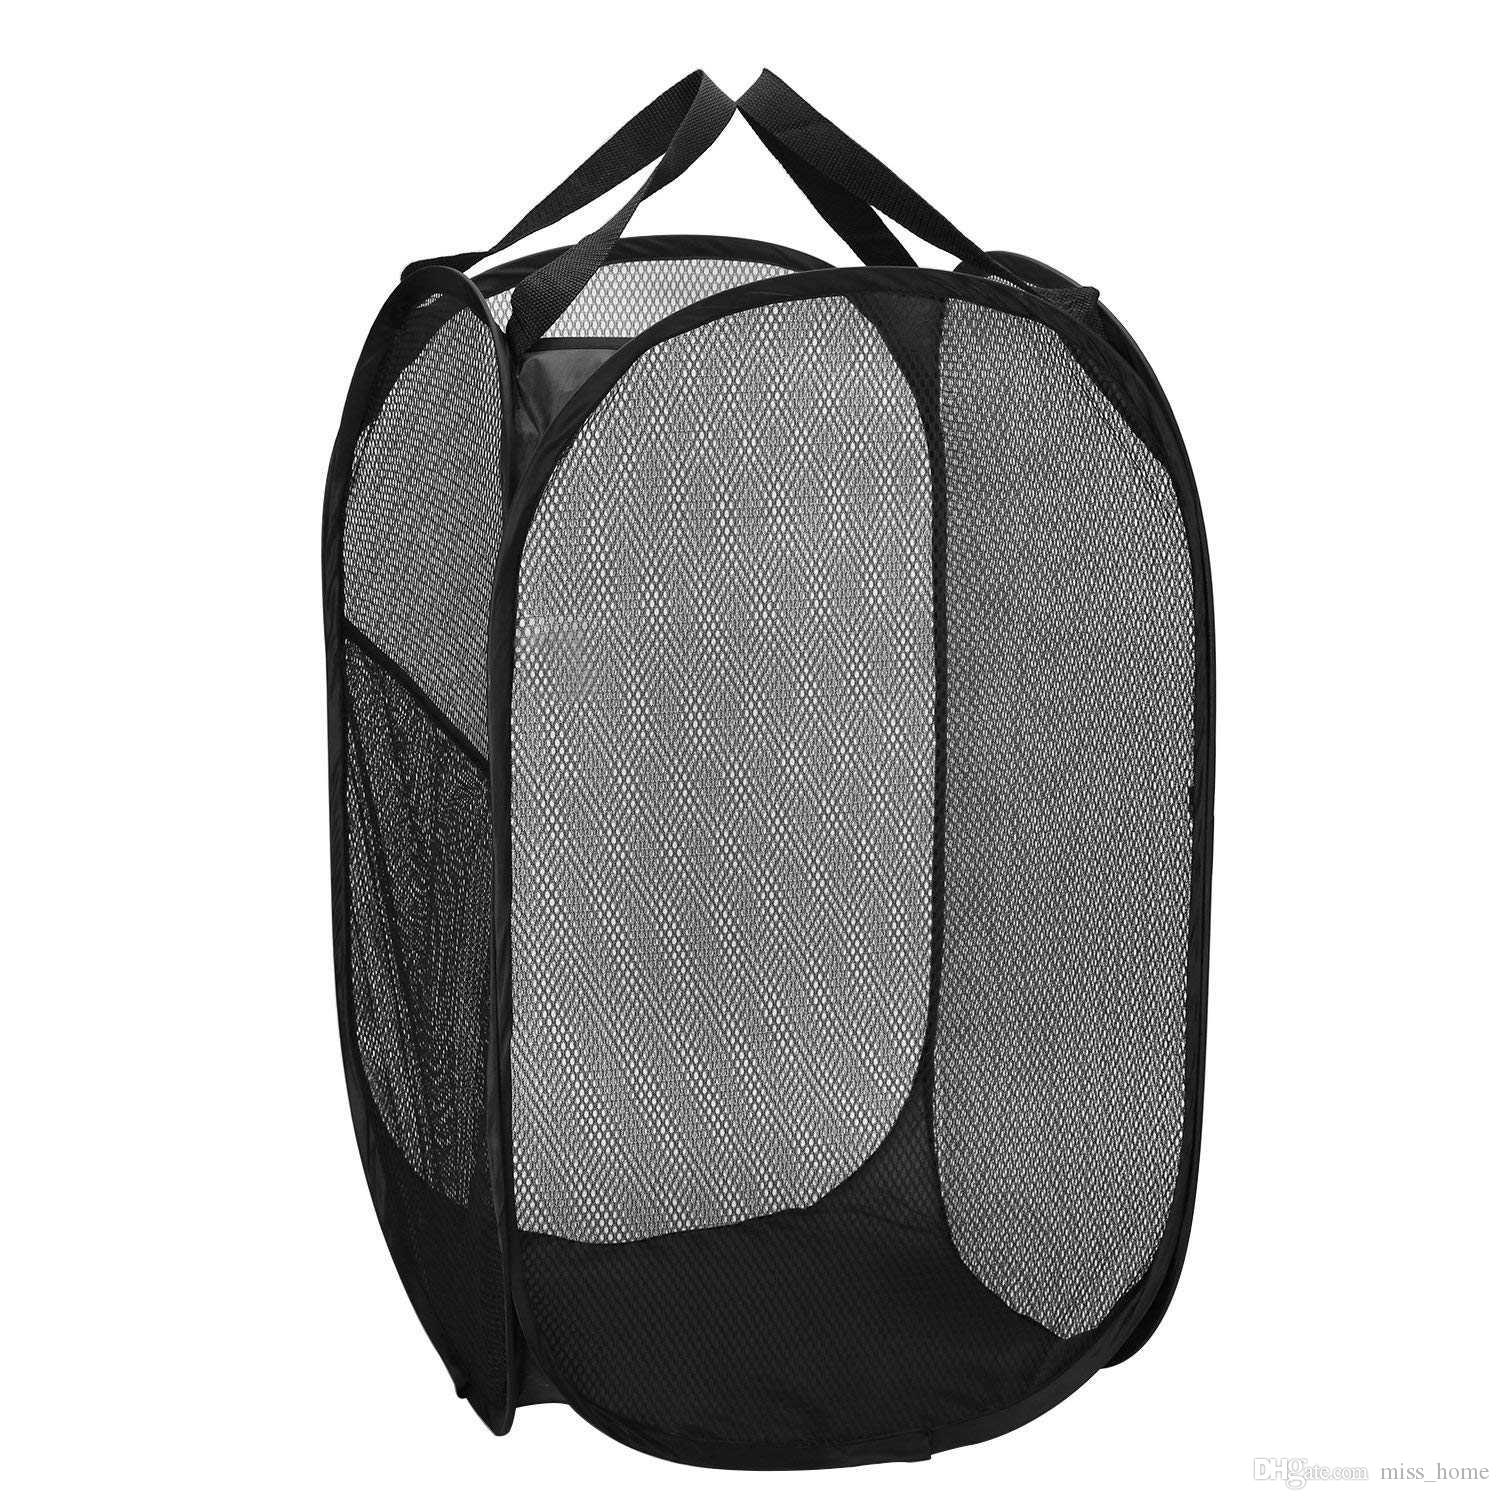 f856051c1028 Top Quality Mesh Popup Laundry Hamper - Portable, Durable Handles,  Collapsible for Storage and Easy to Open. Folding Pop-Up Clothes Hampers